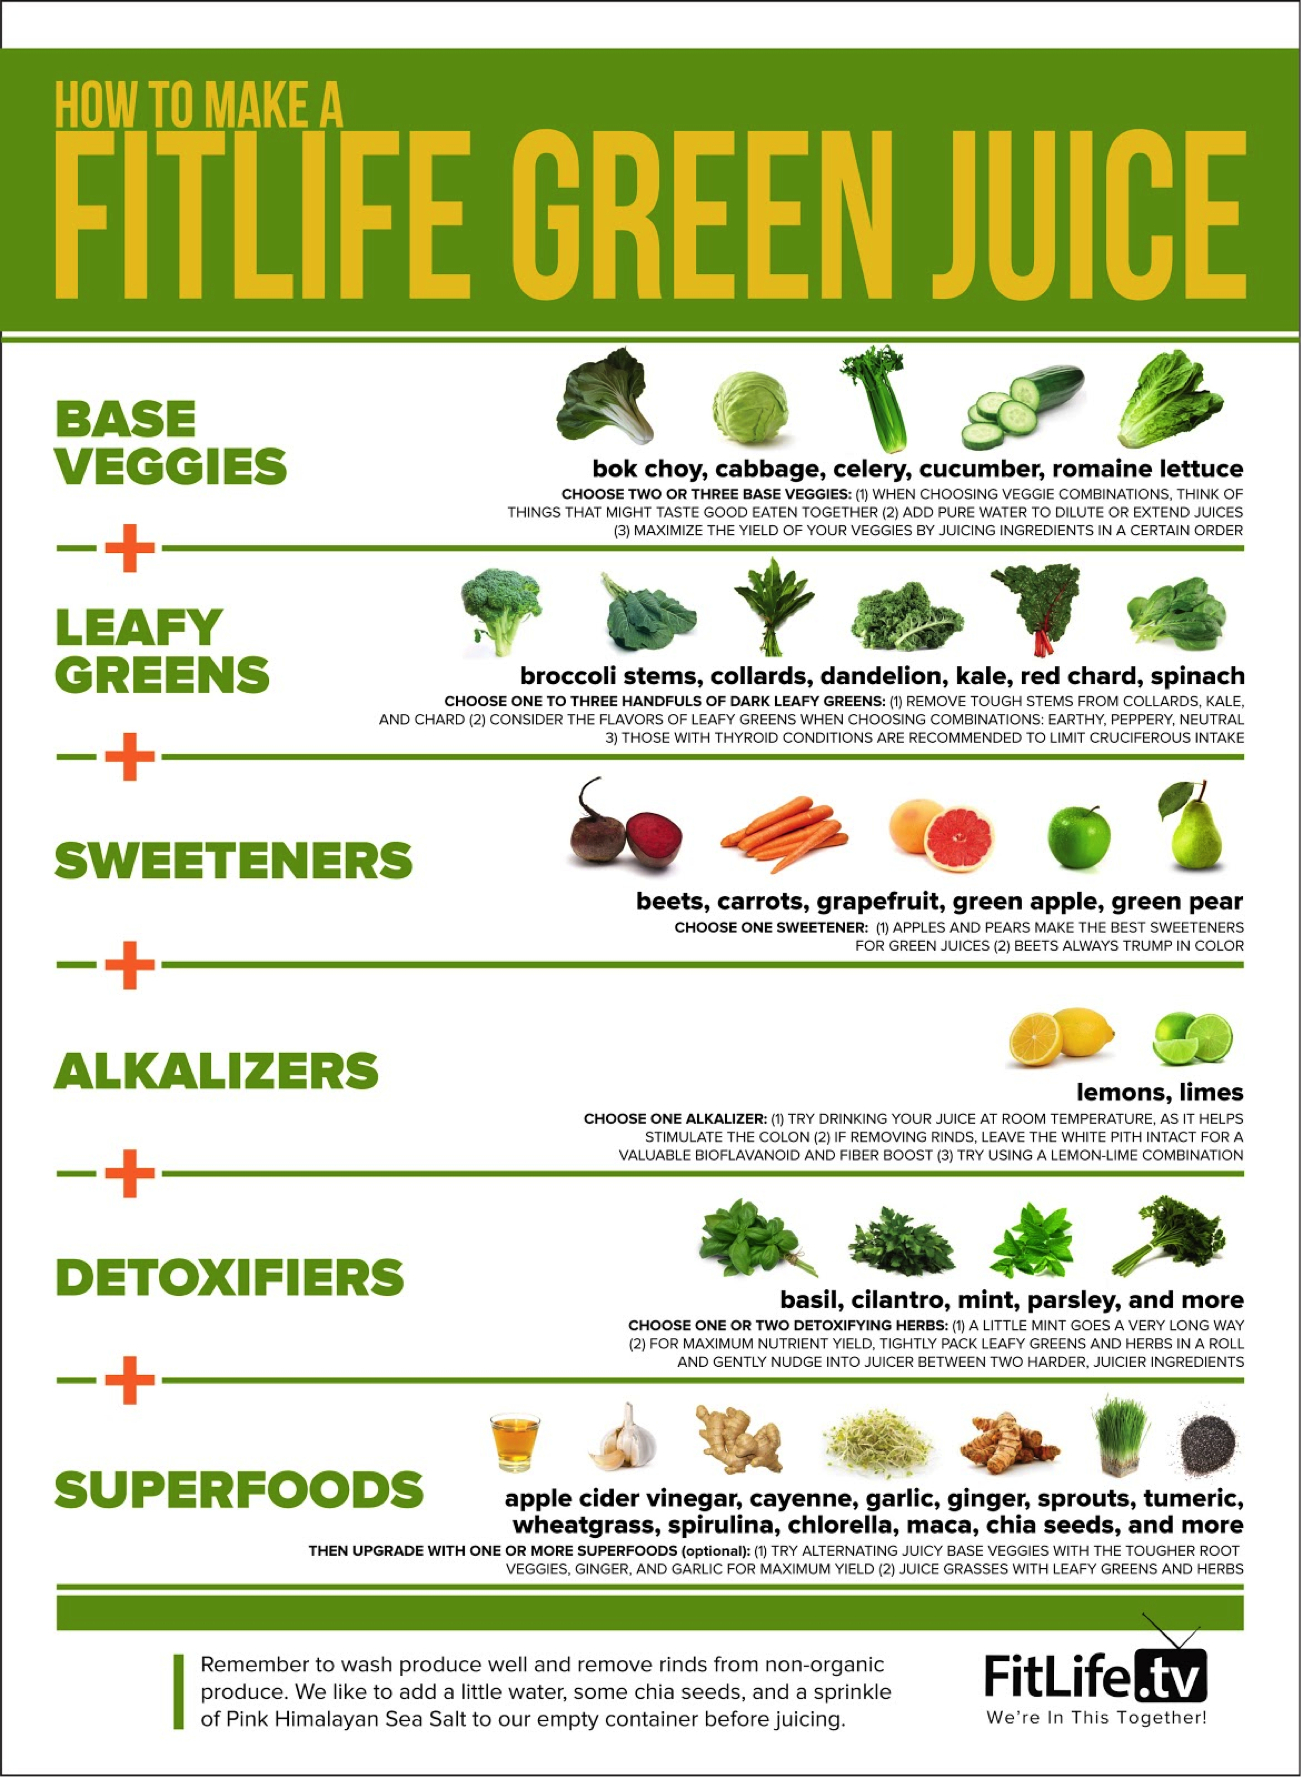 How To Make Fitlife Green Juice